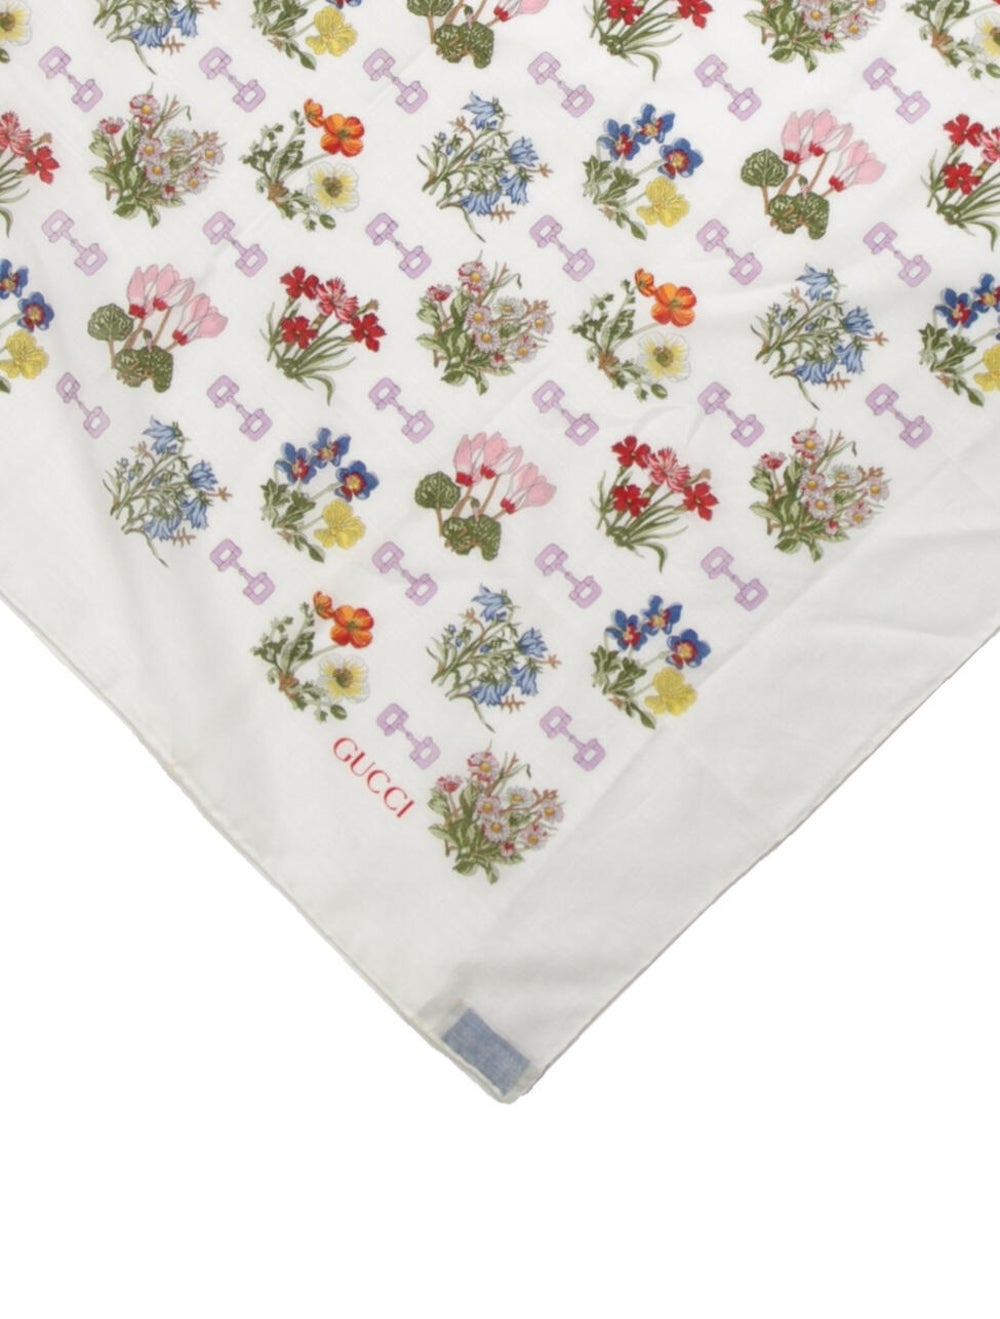 Gucci Floral Print Scarf White - image 2